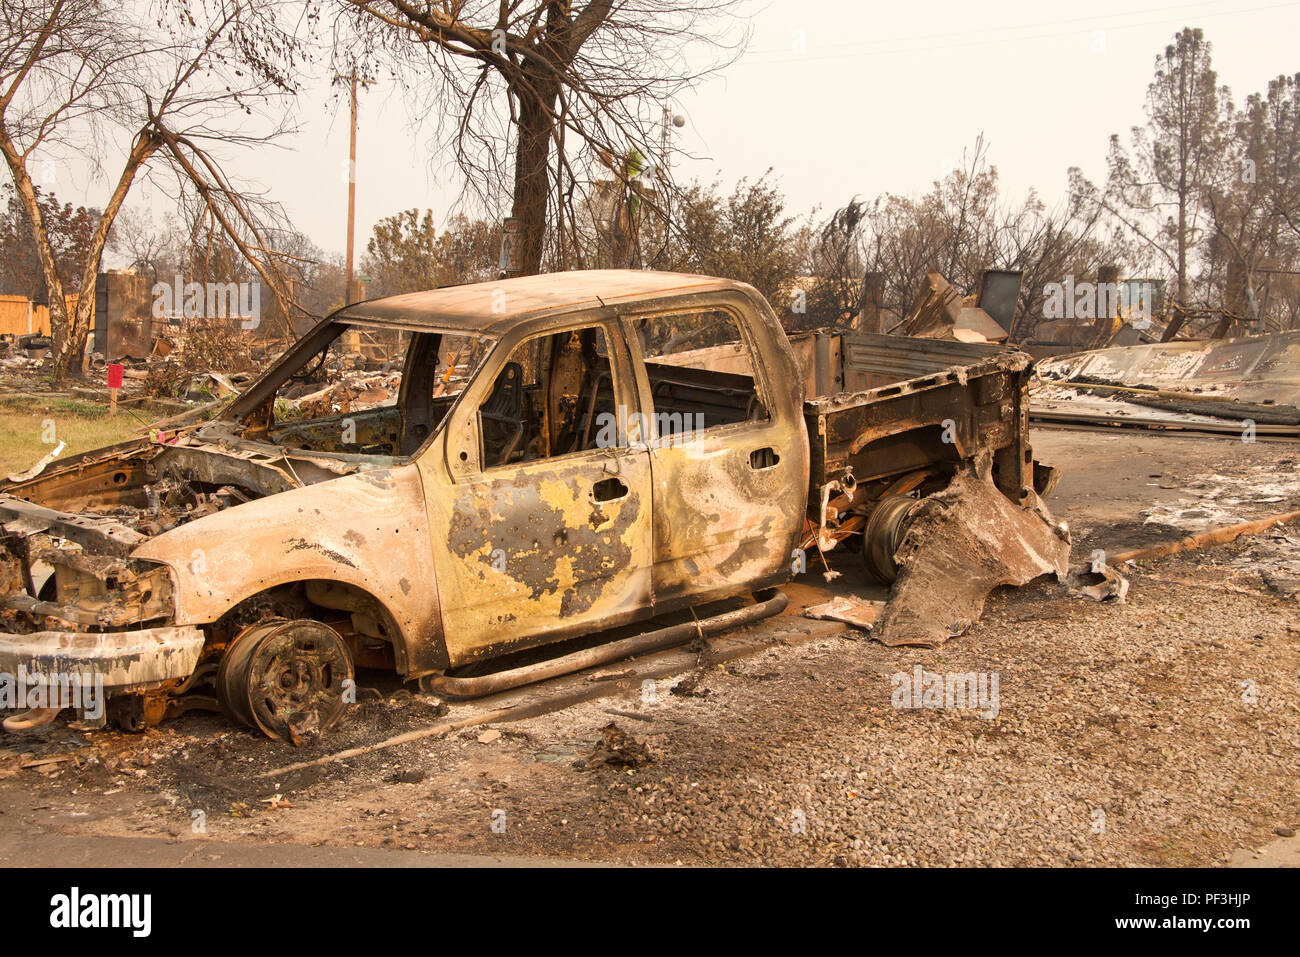 Charred truck in front of home burned to the ground in the recent wild fire fire storm in Redding, California. Smoke and ash in the air as the fire co - Stock Image